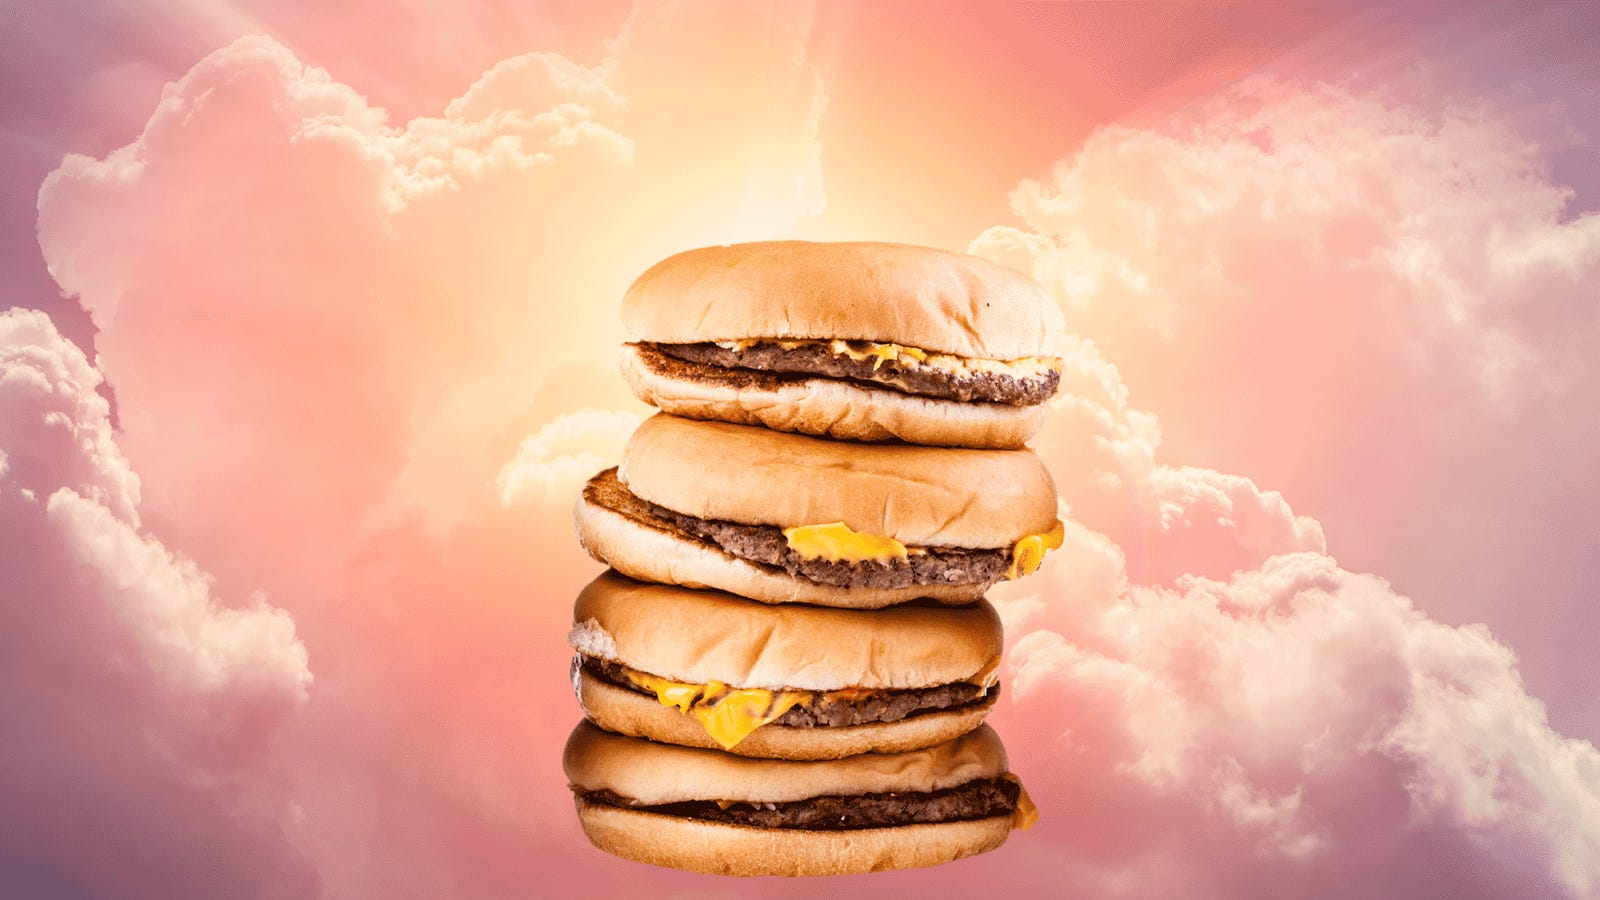 The state of the plain fast food hamburger